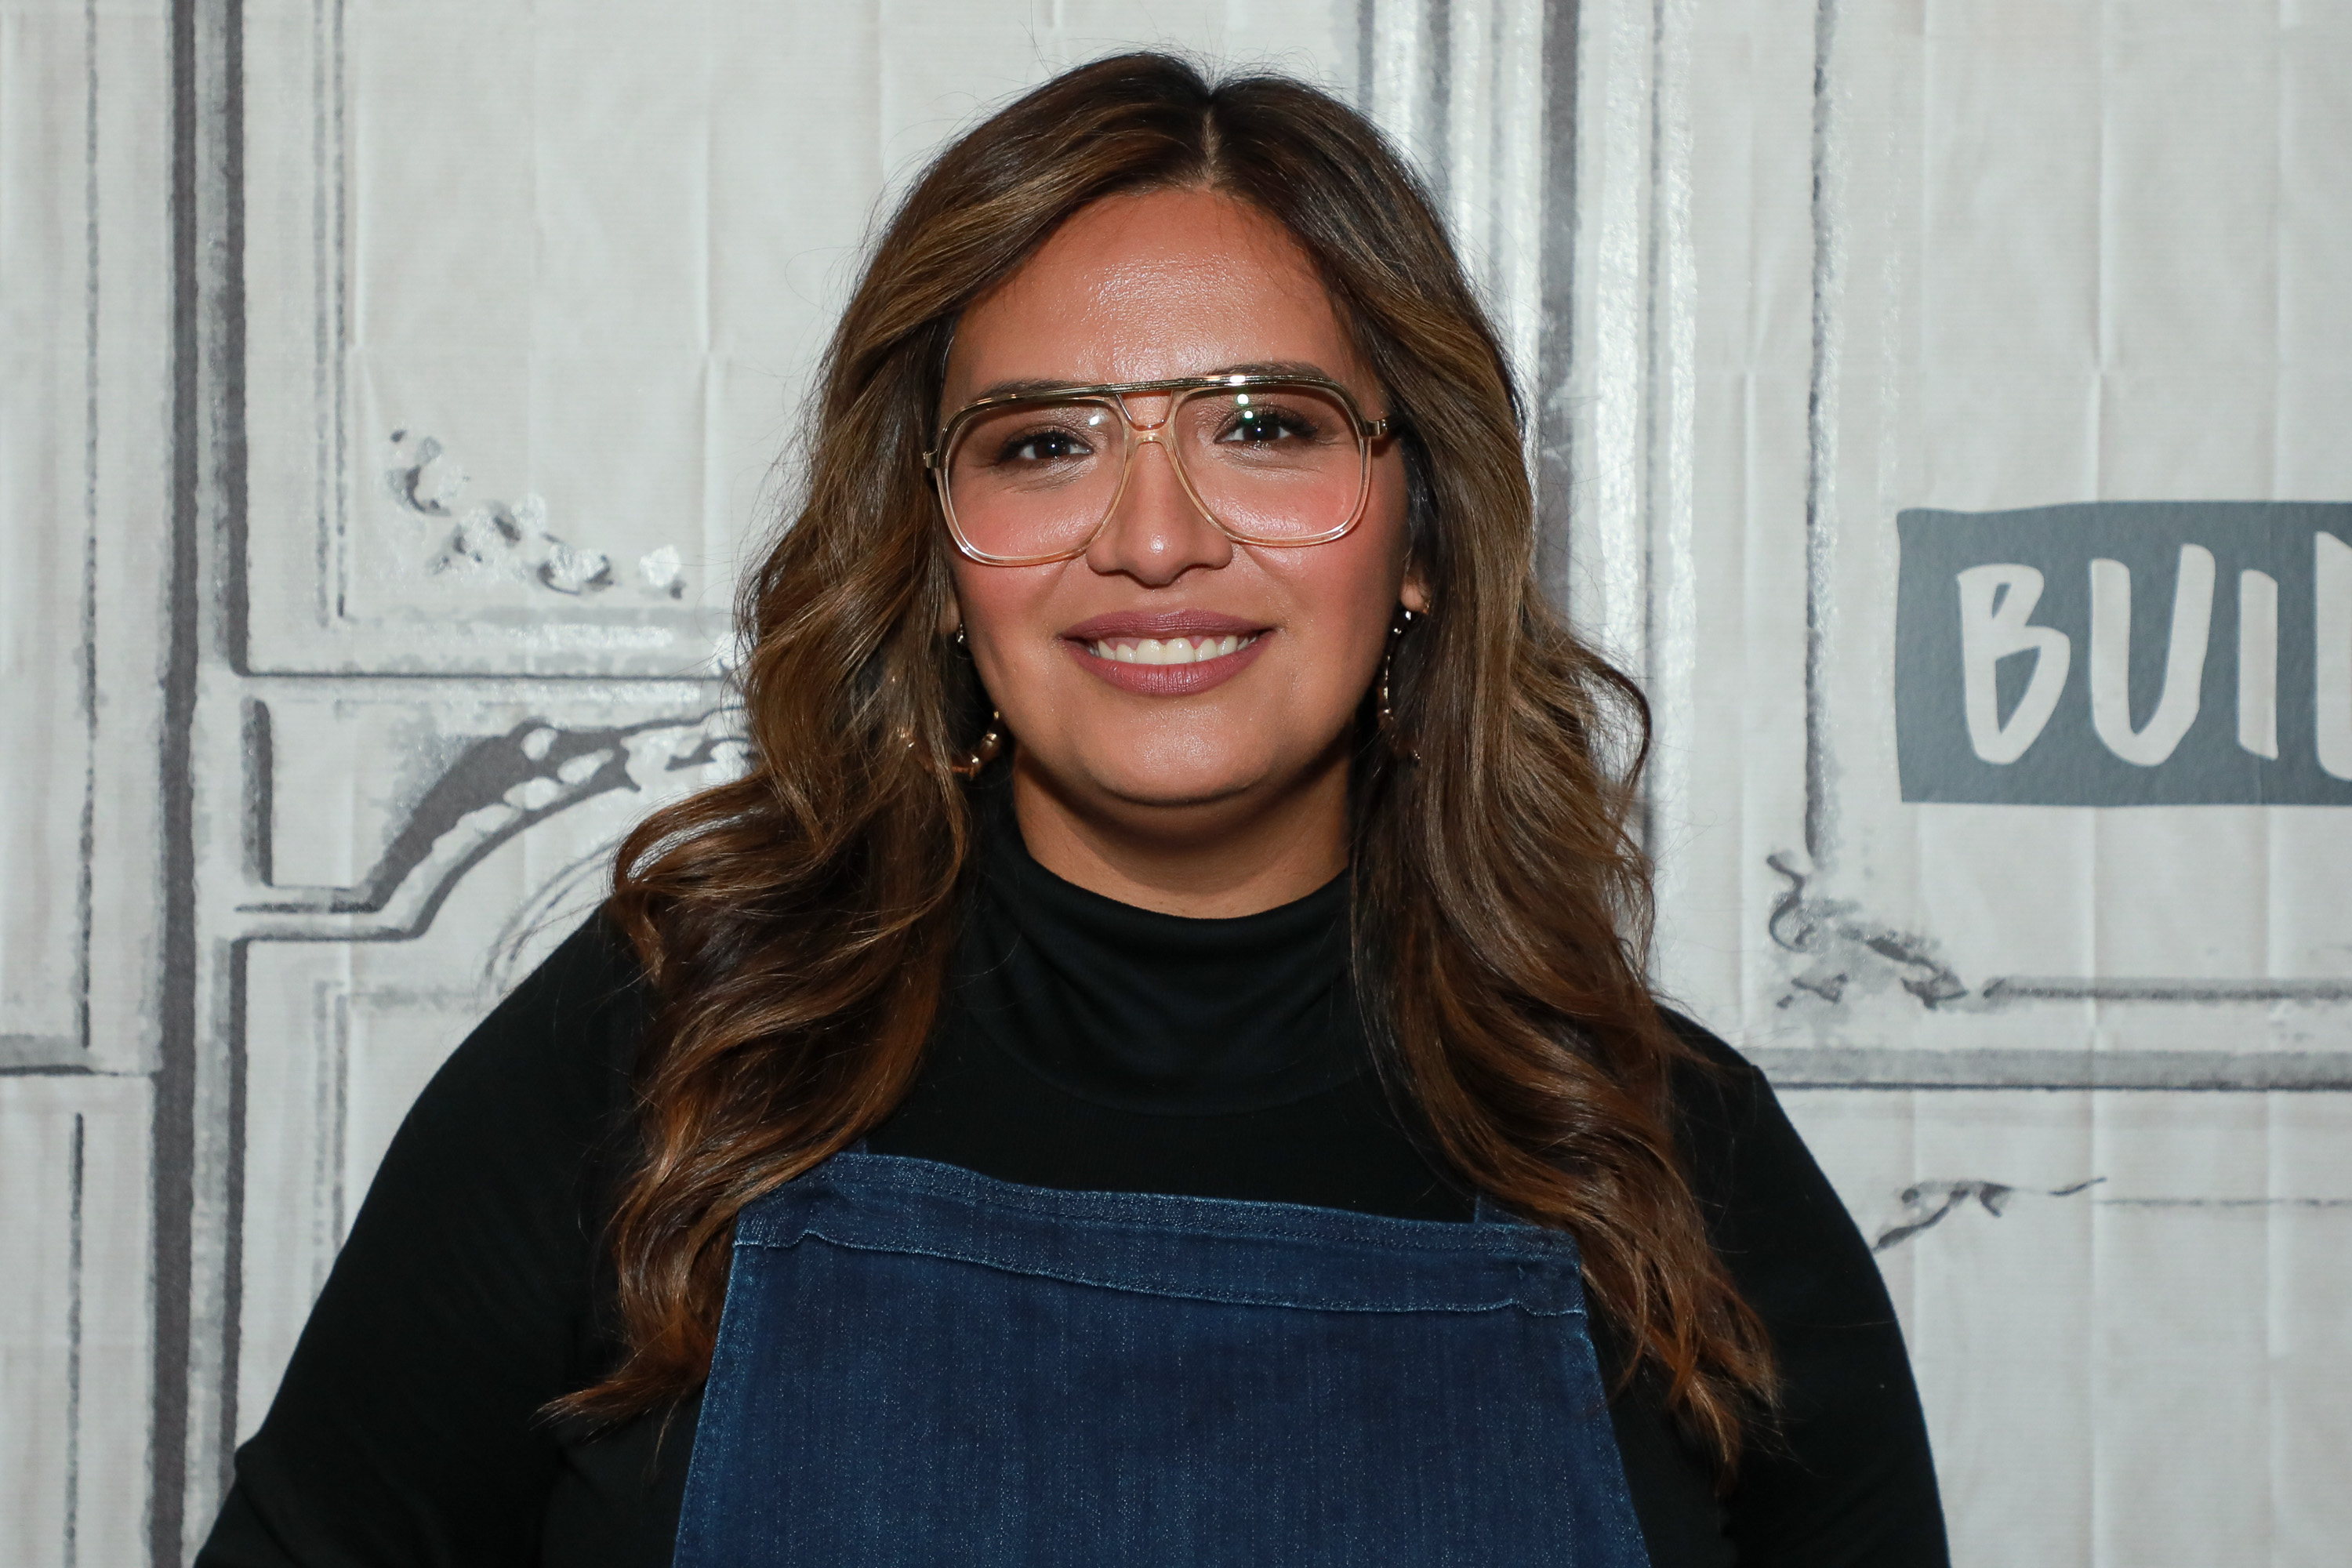 Cristela Alonzo Reveals She Wasn't Paid For 'Cristela' Sitcom Pilot, Says Her 'White Partner Got 3 Times More Money' When She Sold It